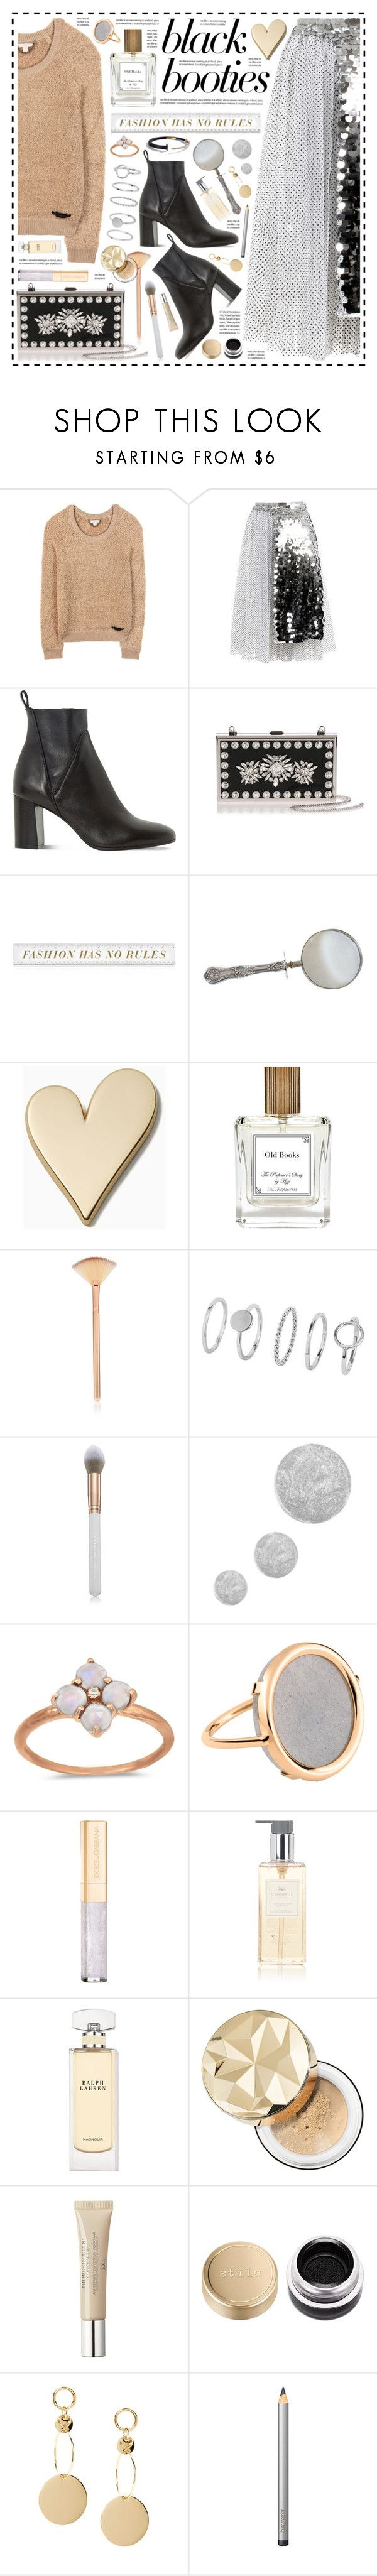 """""""No Rules!"""" by hennie-henne ❤ liked on Polyvore featuring Burberry, Anouki, Dune Black, Manolo Blahnik, Kate Spade, The Perfumer's Story by Azzi, Topshop, BillyTheTree, Ginette NY and Dolce&Gabbana"""